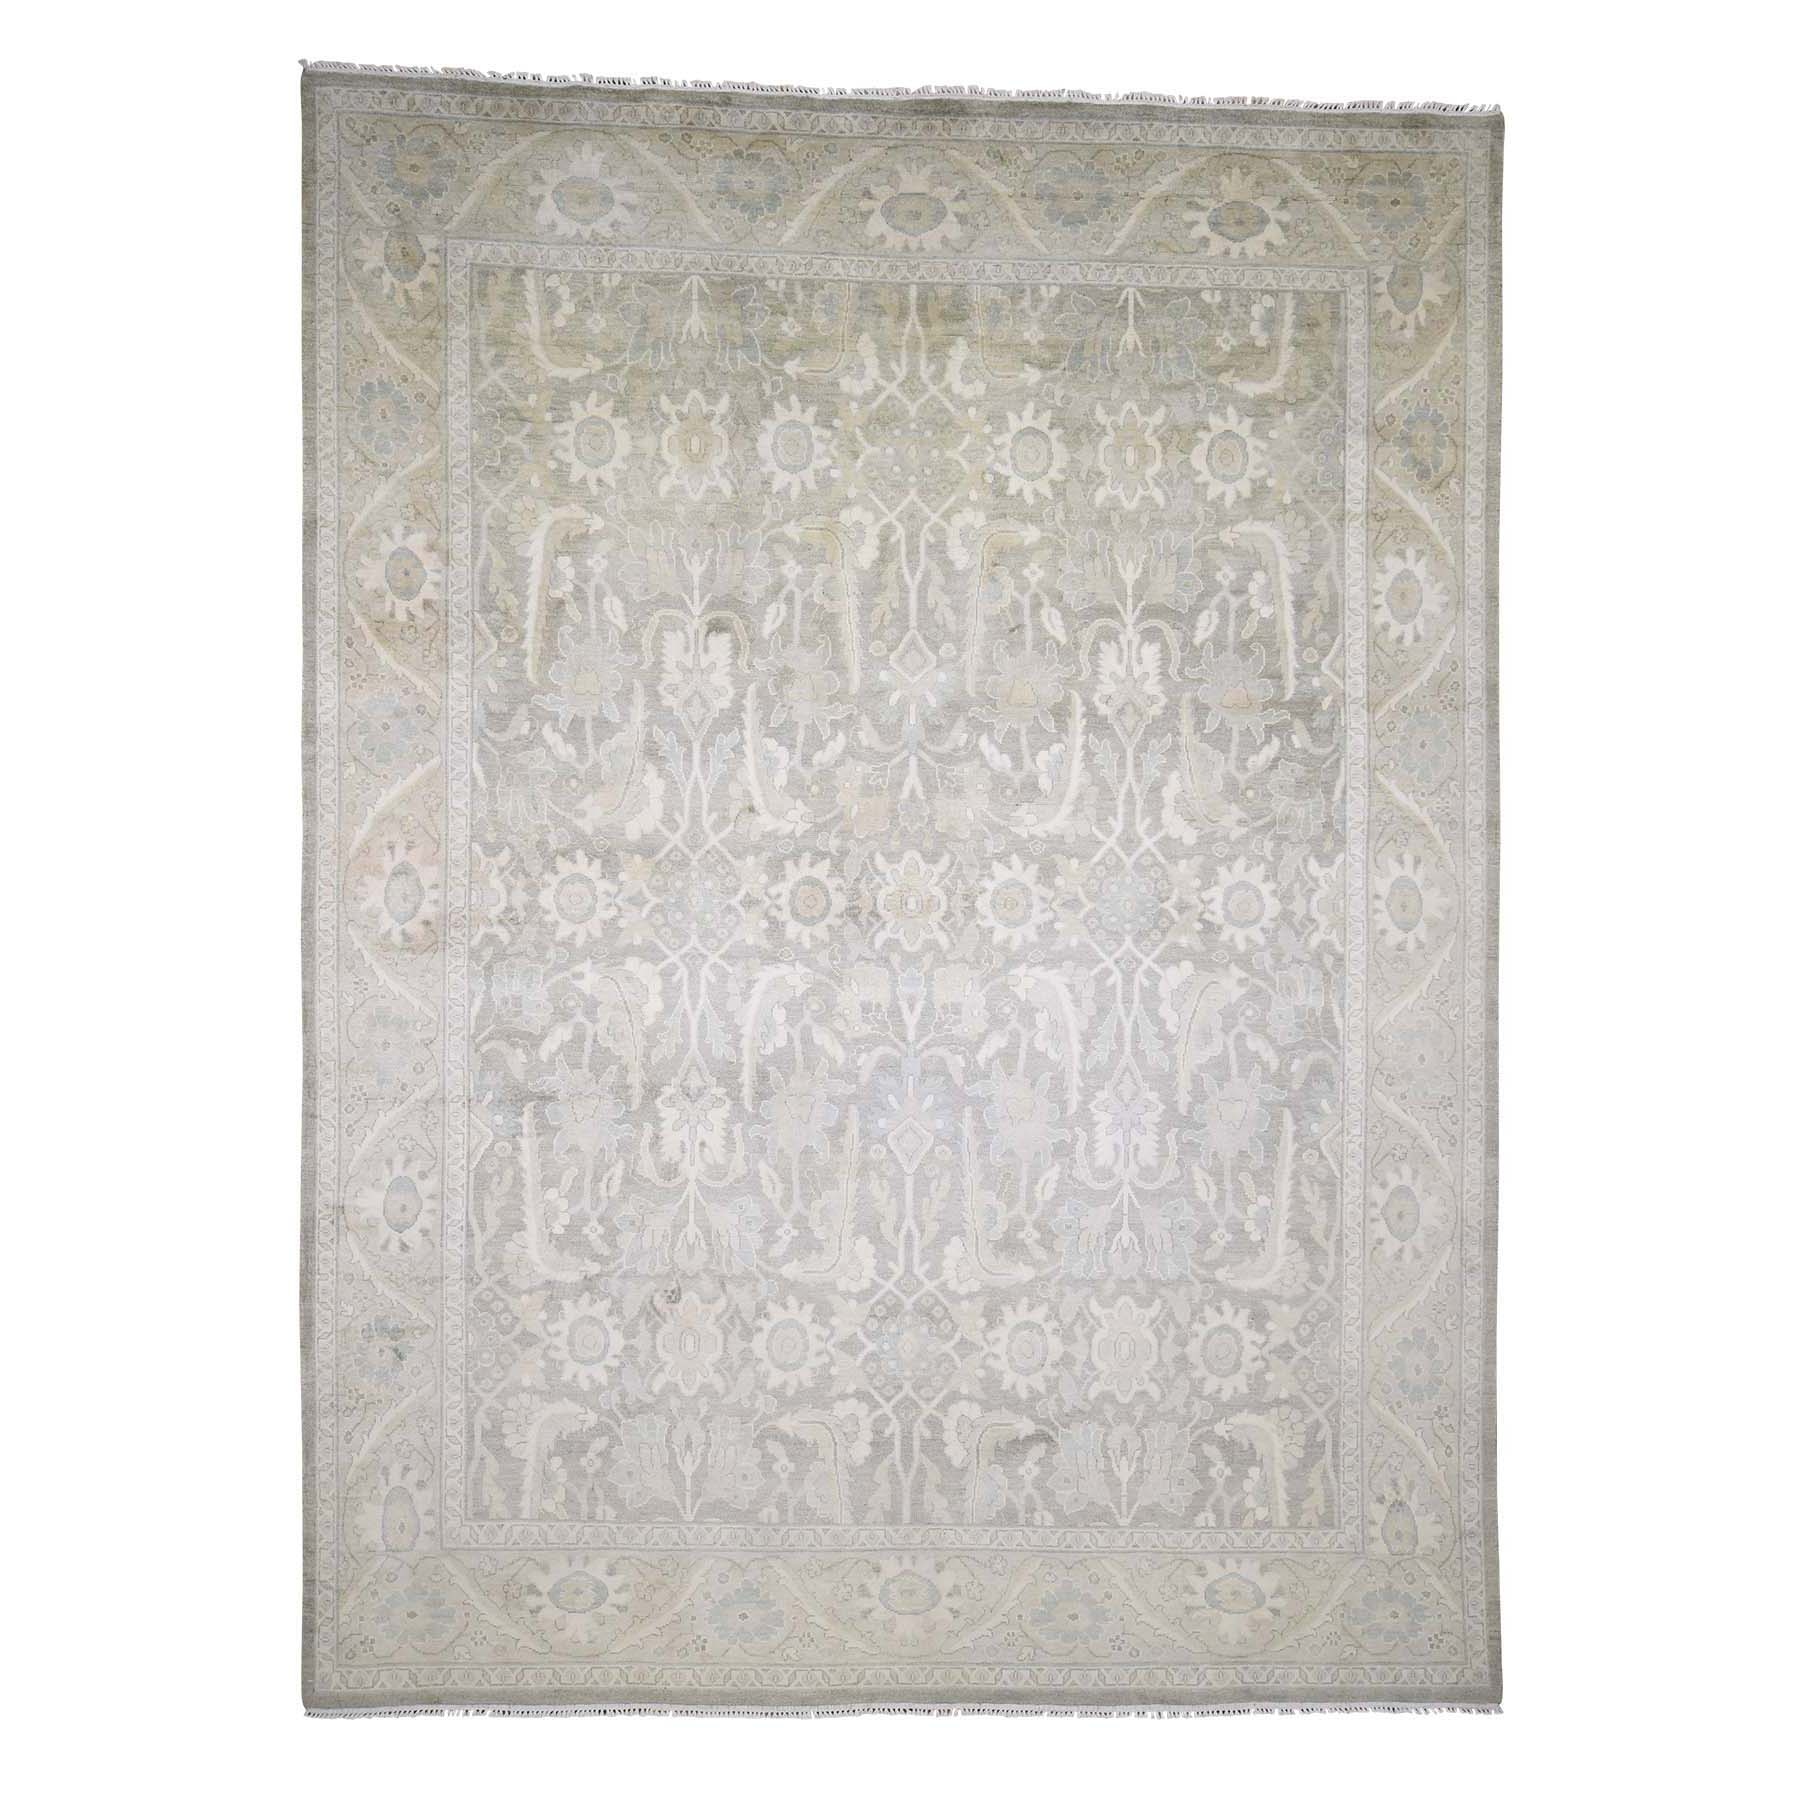 Agra And Turkish Collection Hand Knotted Beige Rug No: 0181986